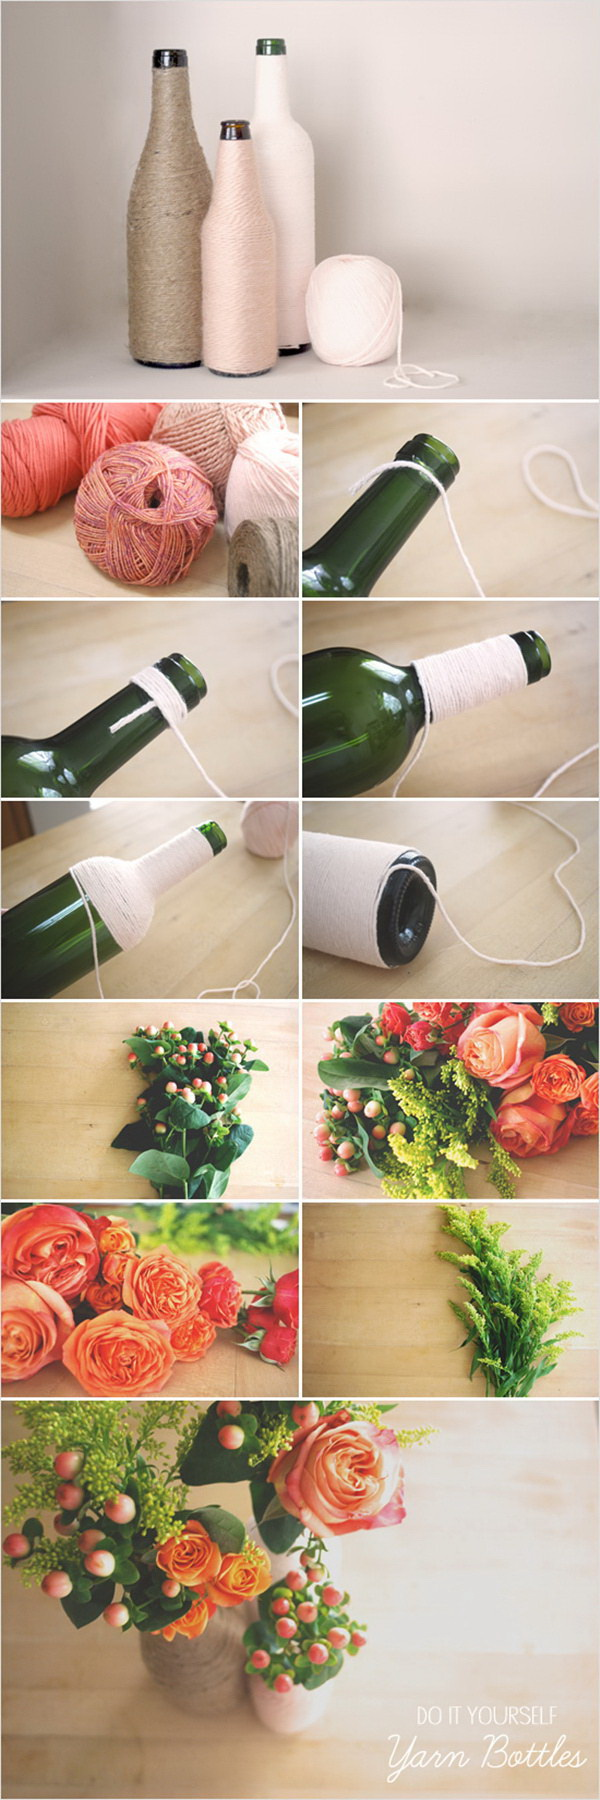 DIY Yarn Wrapped Bottles. Transform wine bottles in a darling spring table decor with some yarn and fresh flowers!